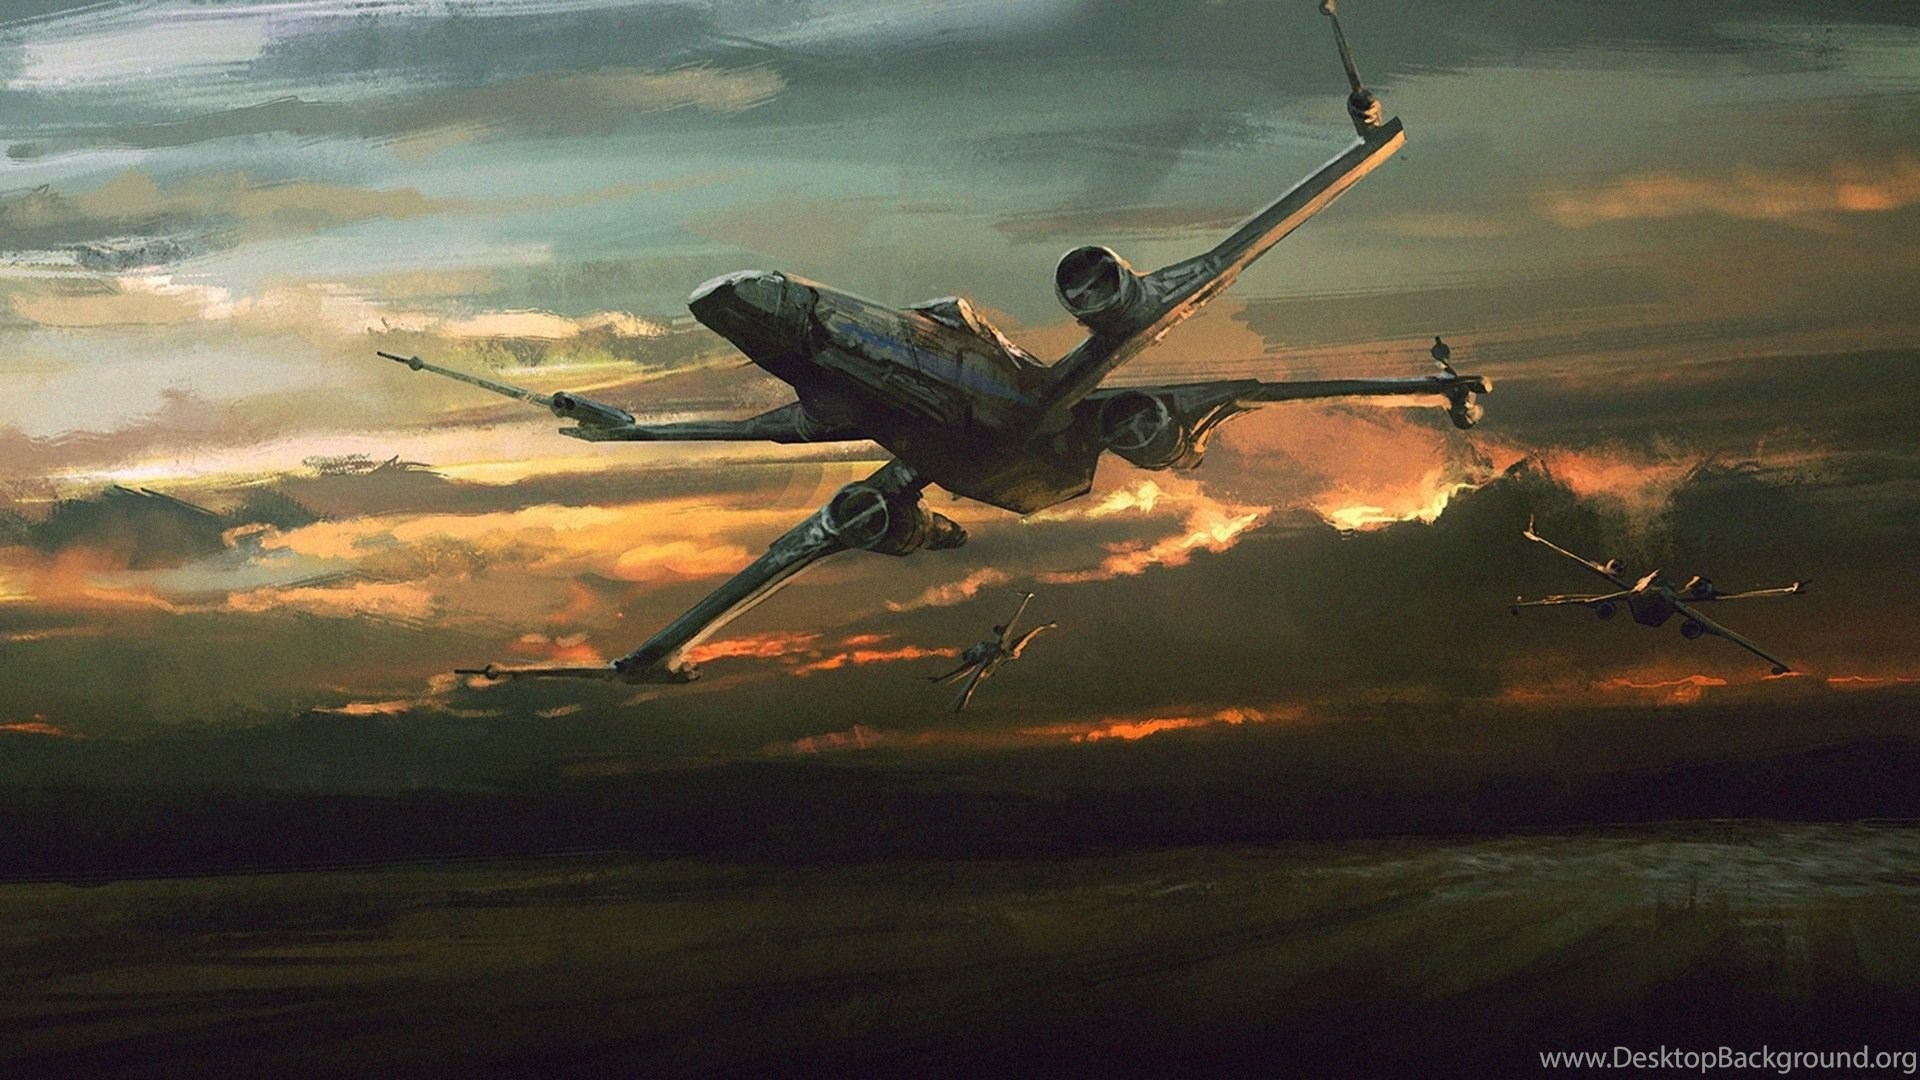 Star Wars The Force Awakens X Wing 1920x1080 1080p Wallpapers Desktop Background